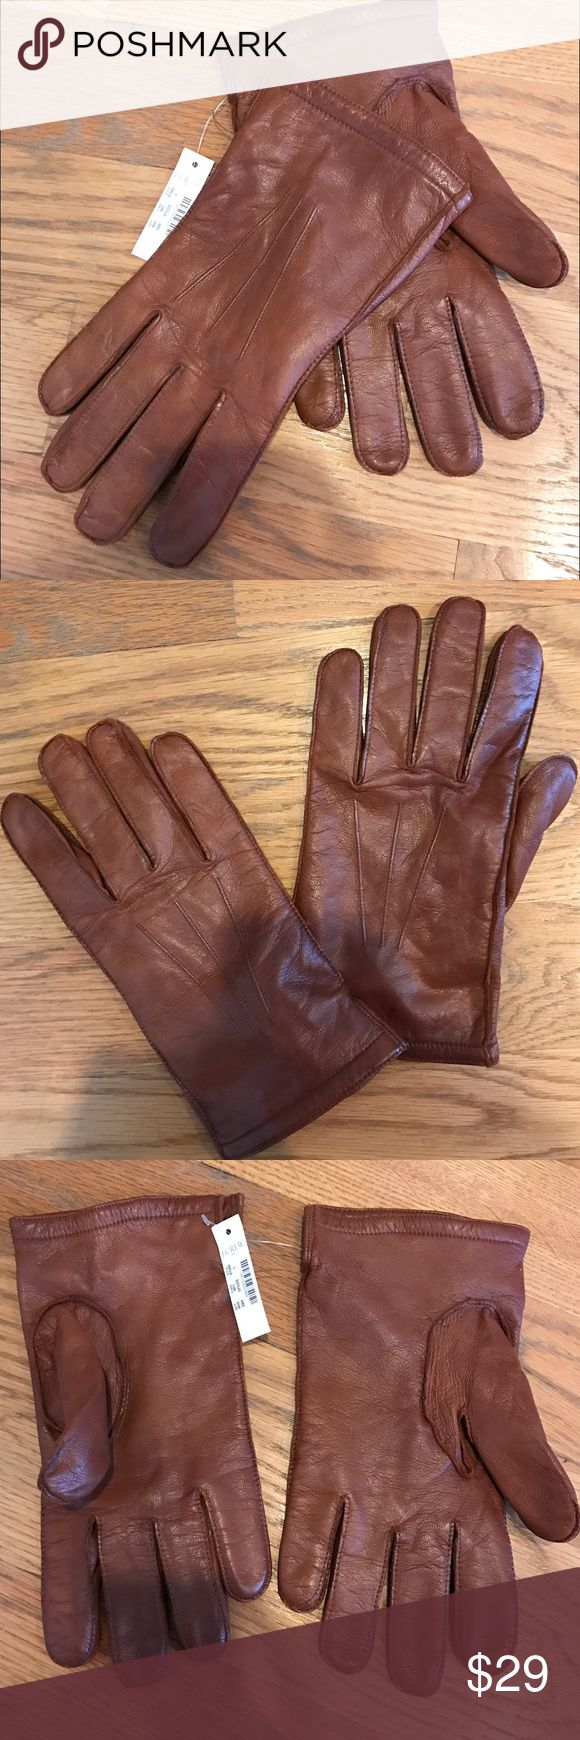 Extra small ladies leather gloves uk - Mens J Crew Brown Leather Gloves Men S J Crew Soft Leather Gloves With Knit